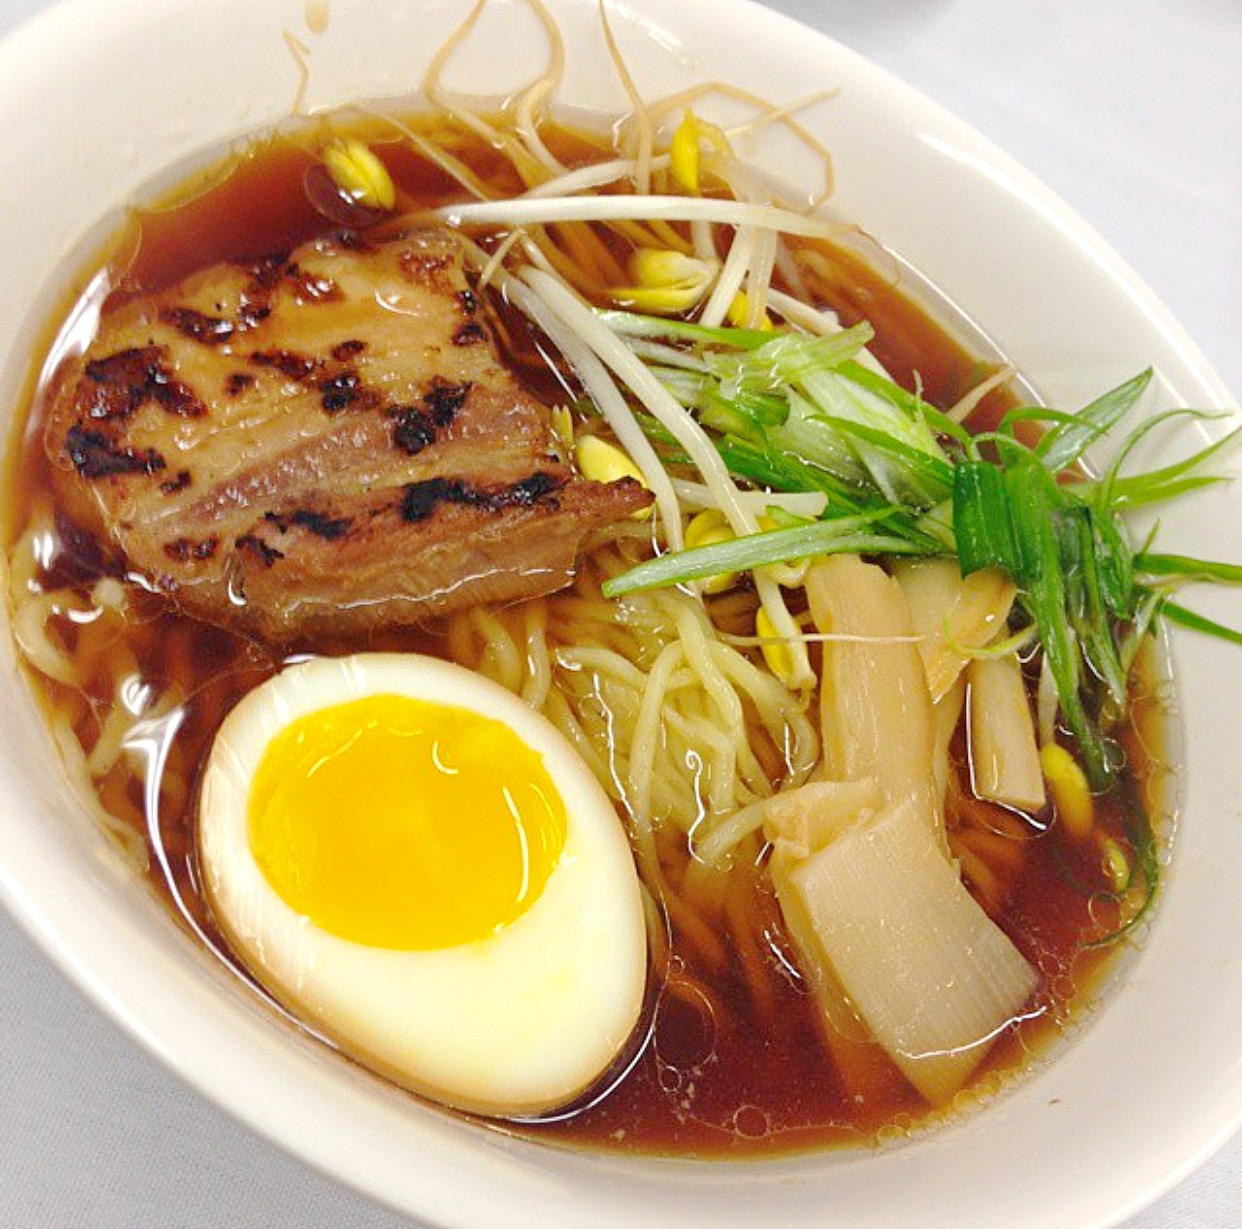 Homemade Ramen with all the fixings // Photo: @chedcancook